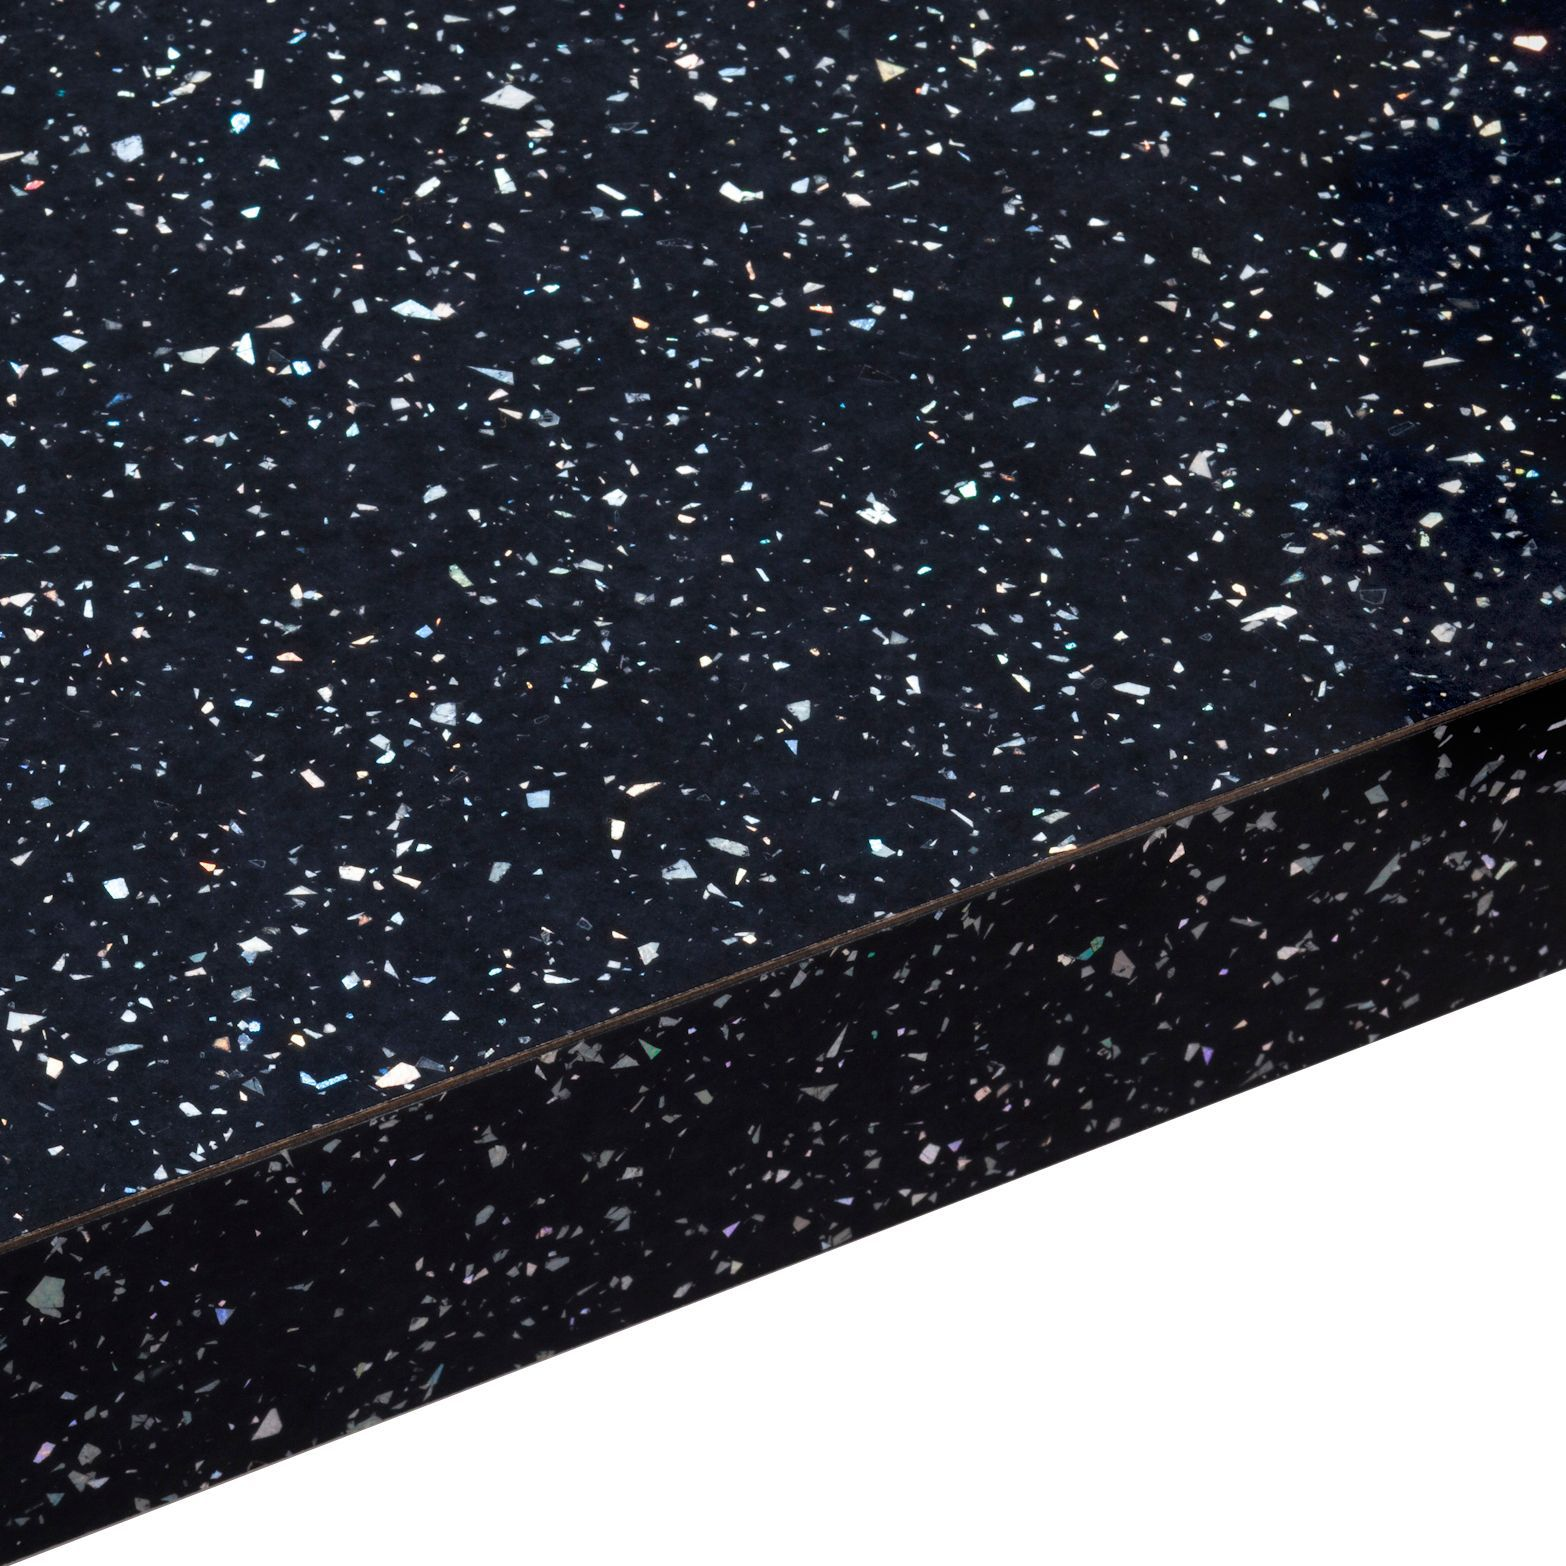 For Kitchen Worktops 38mm Bq Astral Black Gloss Square Edge Kitchen Worktop L3m D